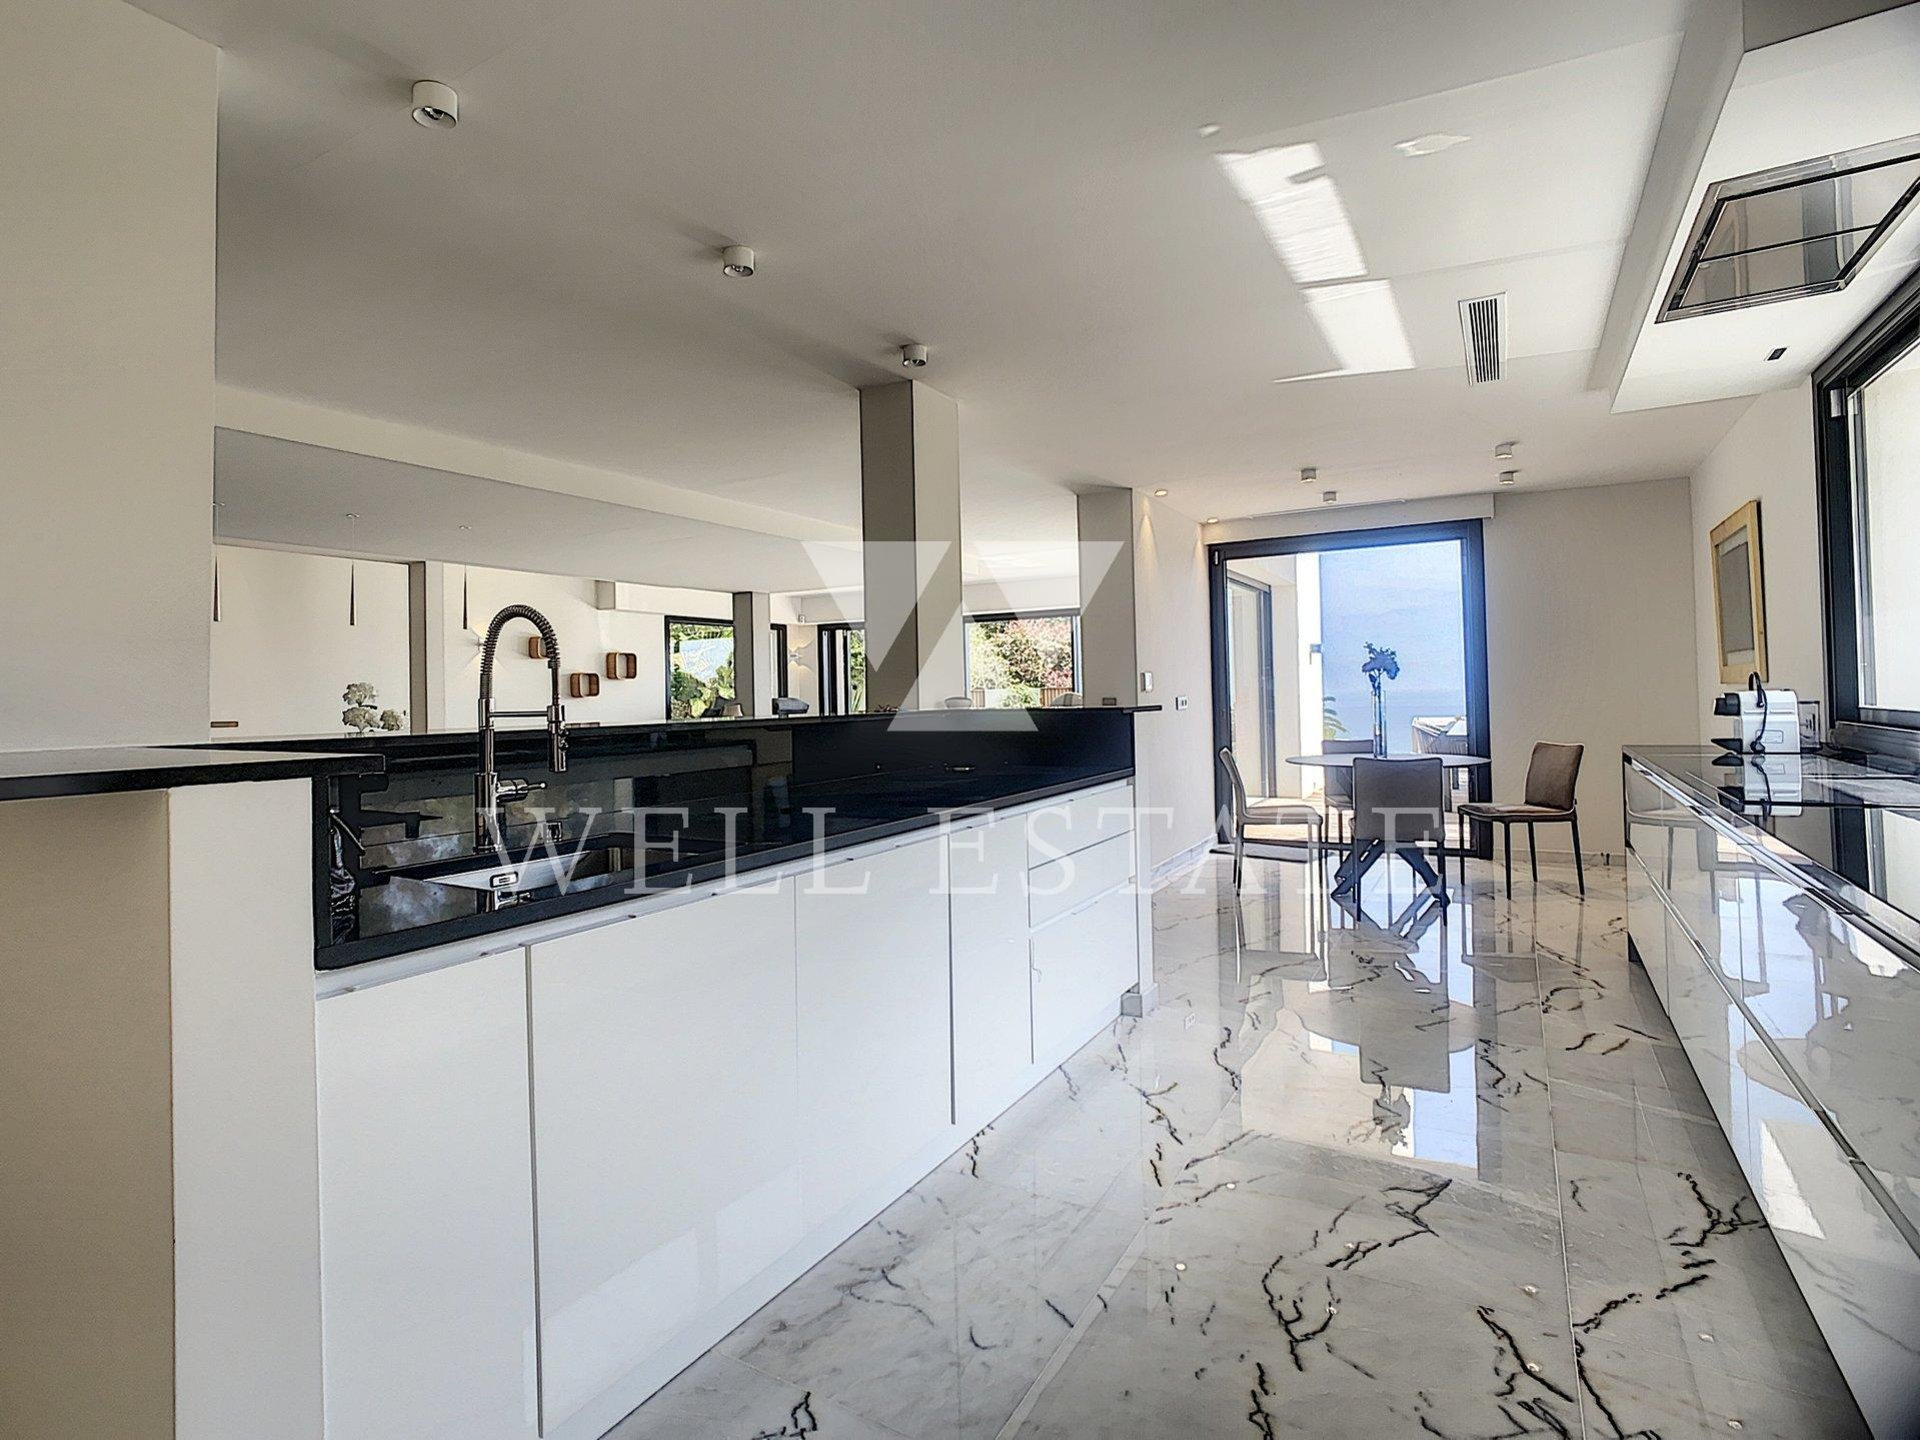 FOR RENT CANNES CONTEMPORAINE VILLA 300M2 5 BEDROOMS WITH POOL AND SEA VIEW